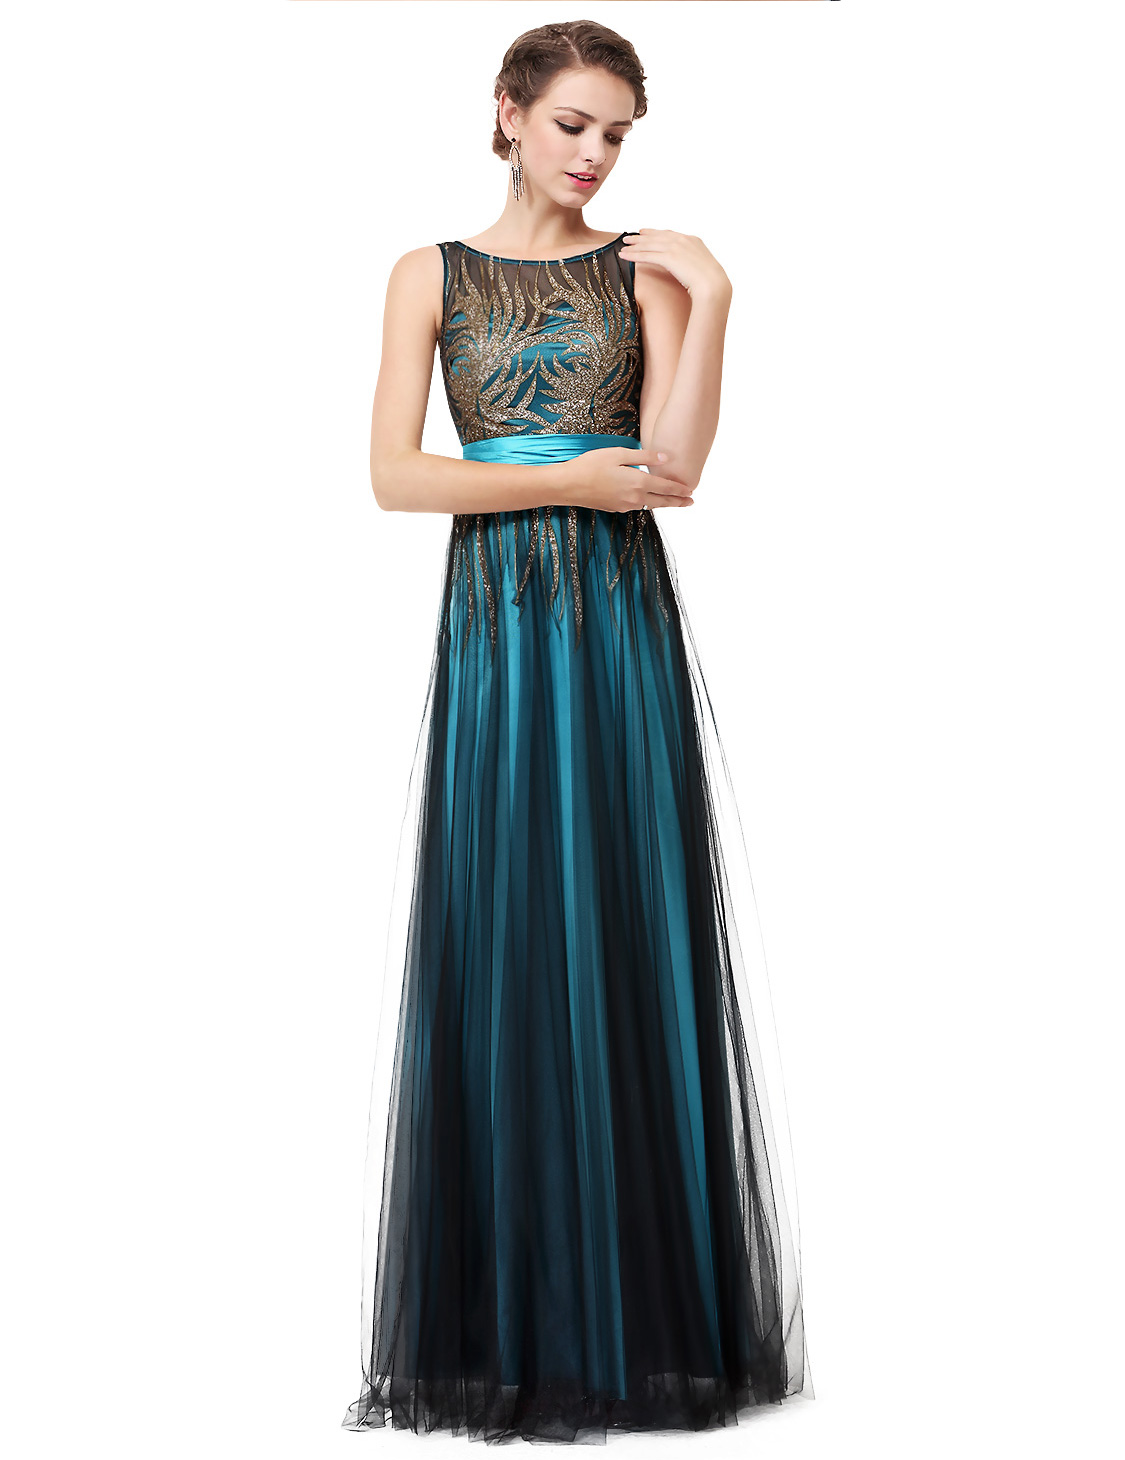 Details about Ever Pretty Long Women Sequins Pageant Evening Dresses Formal  Ball Gowns 08740 58773a6e7734